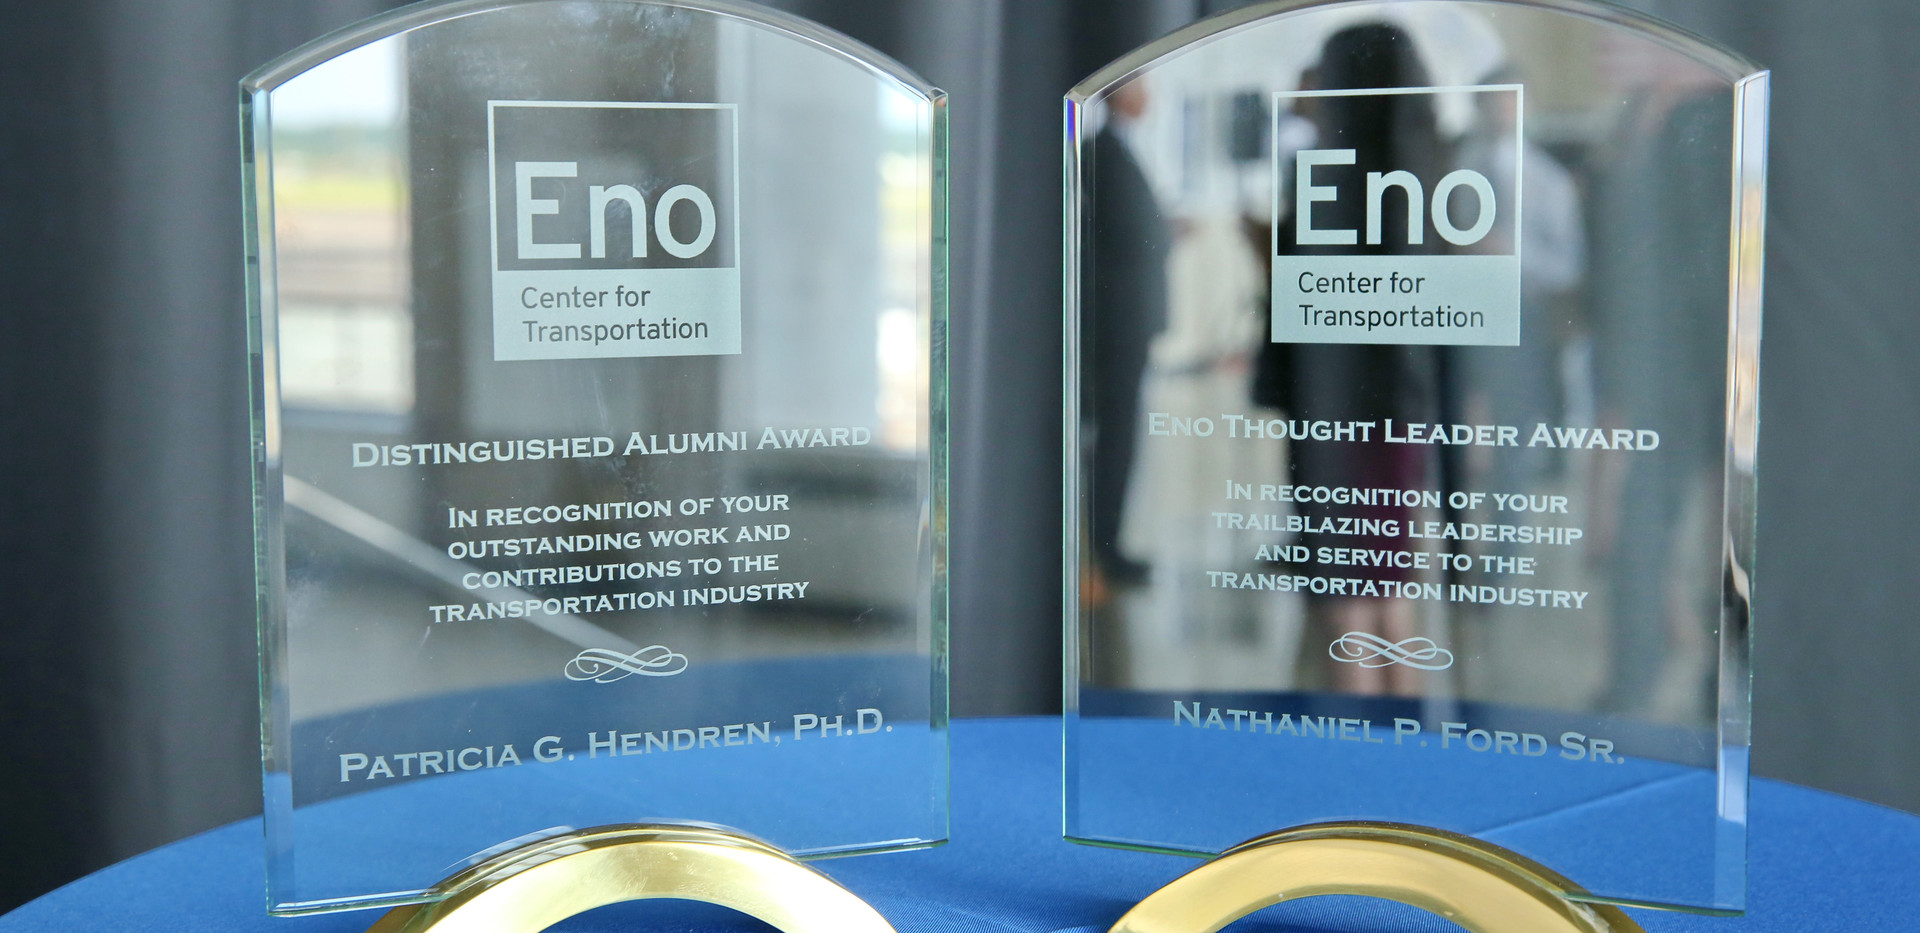 Eno 2019 Leadership Awards